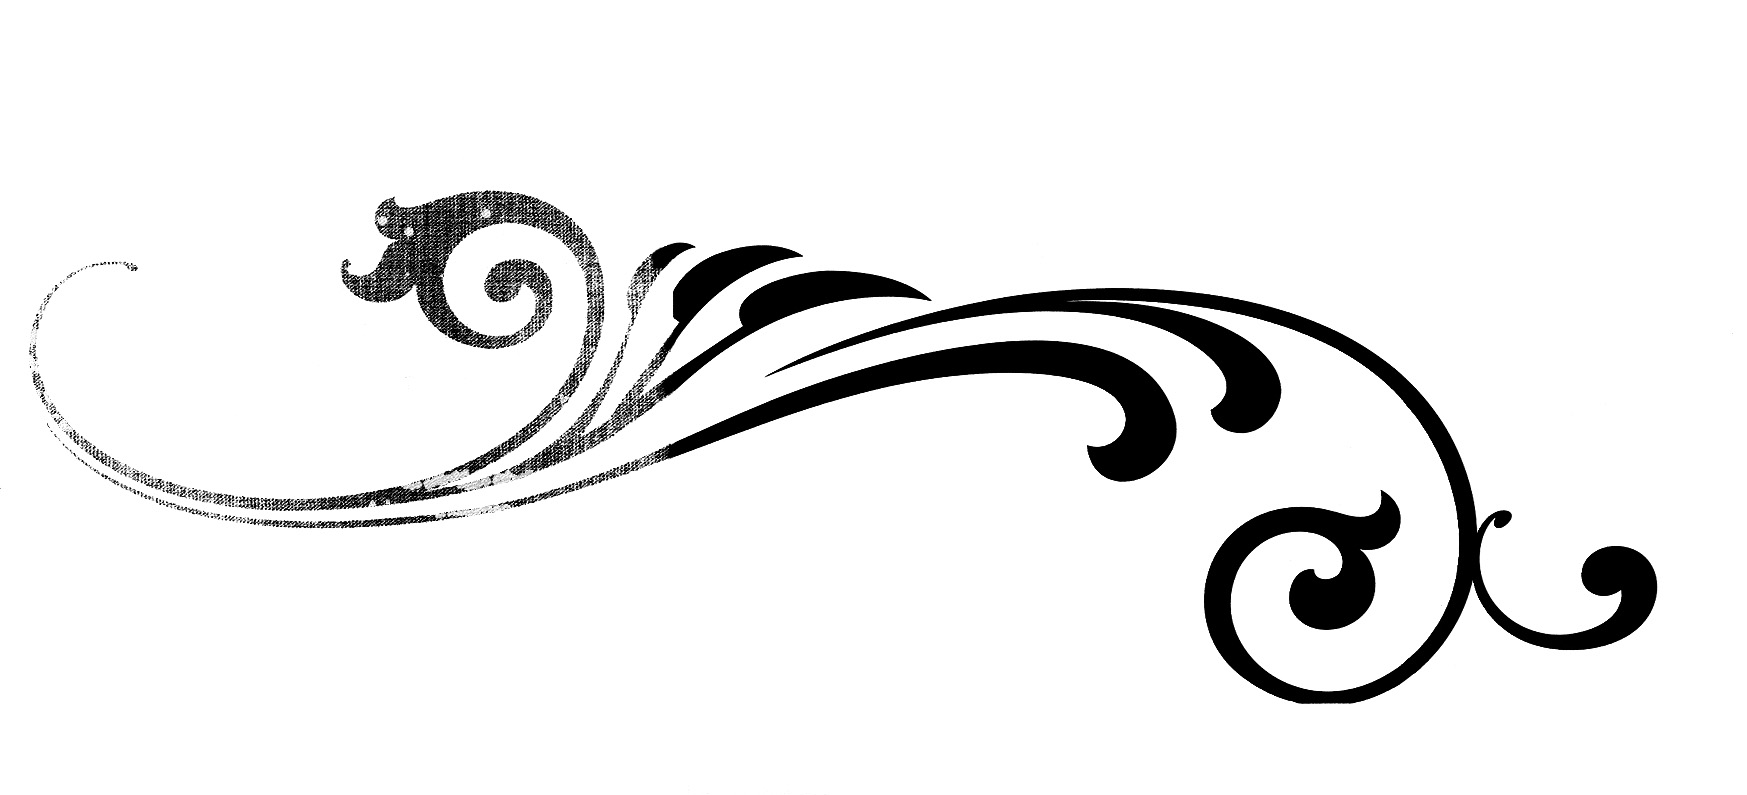 Free Simple Flourish Cliparts Download Free Clip Art Free Clip Art On Clipart Library